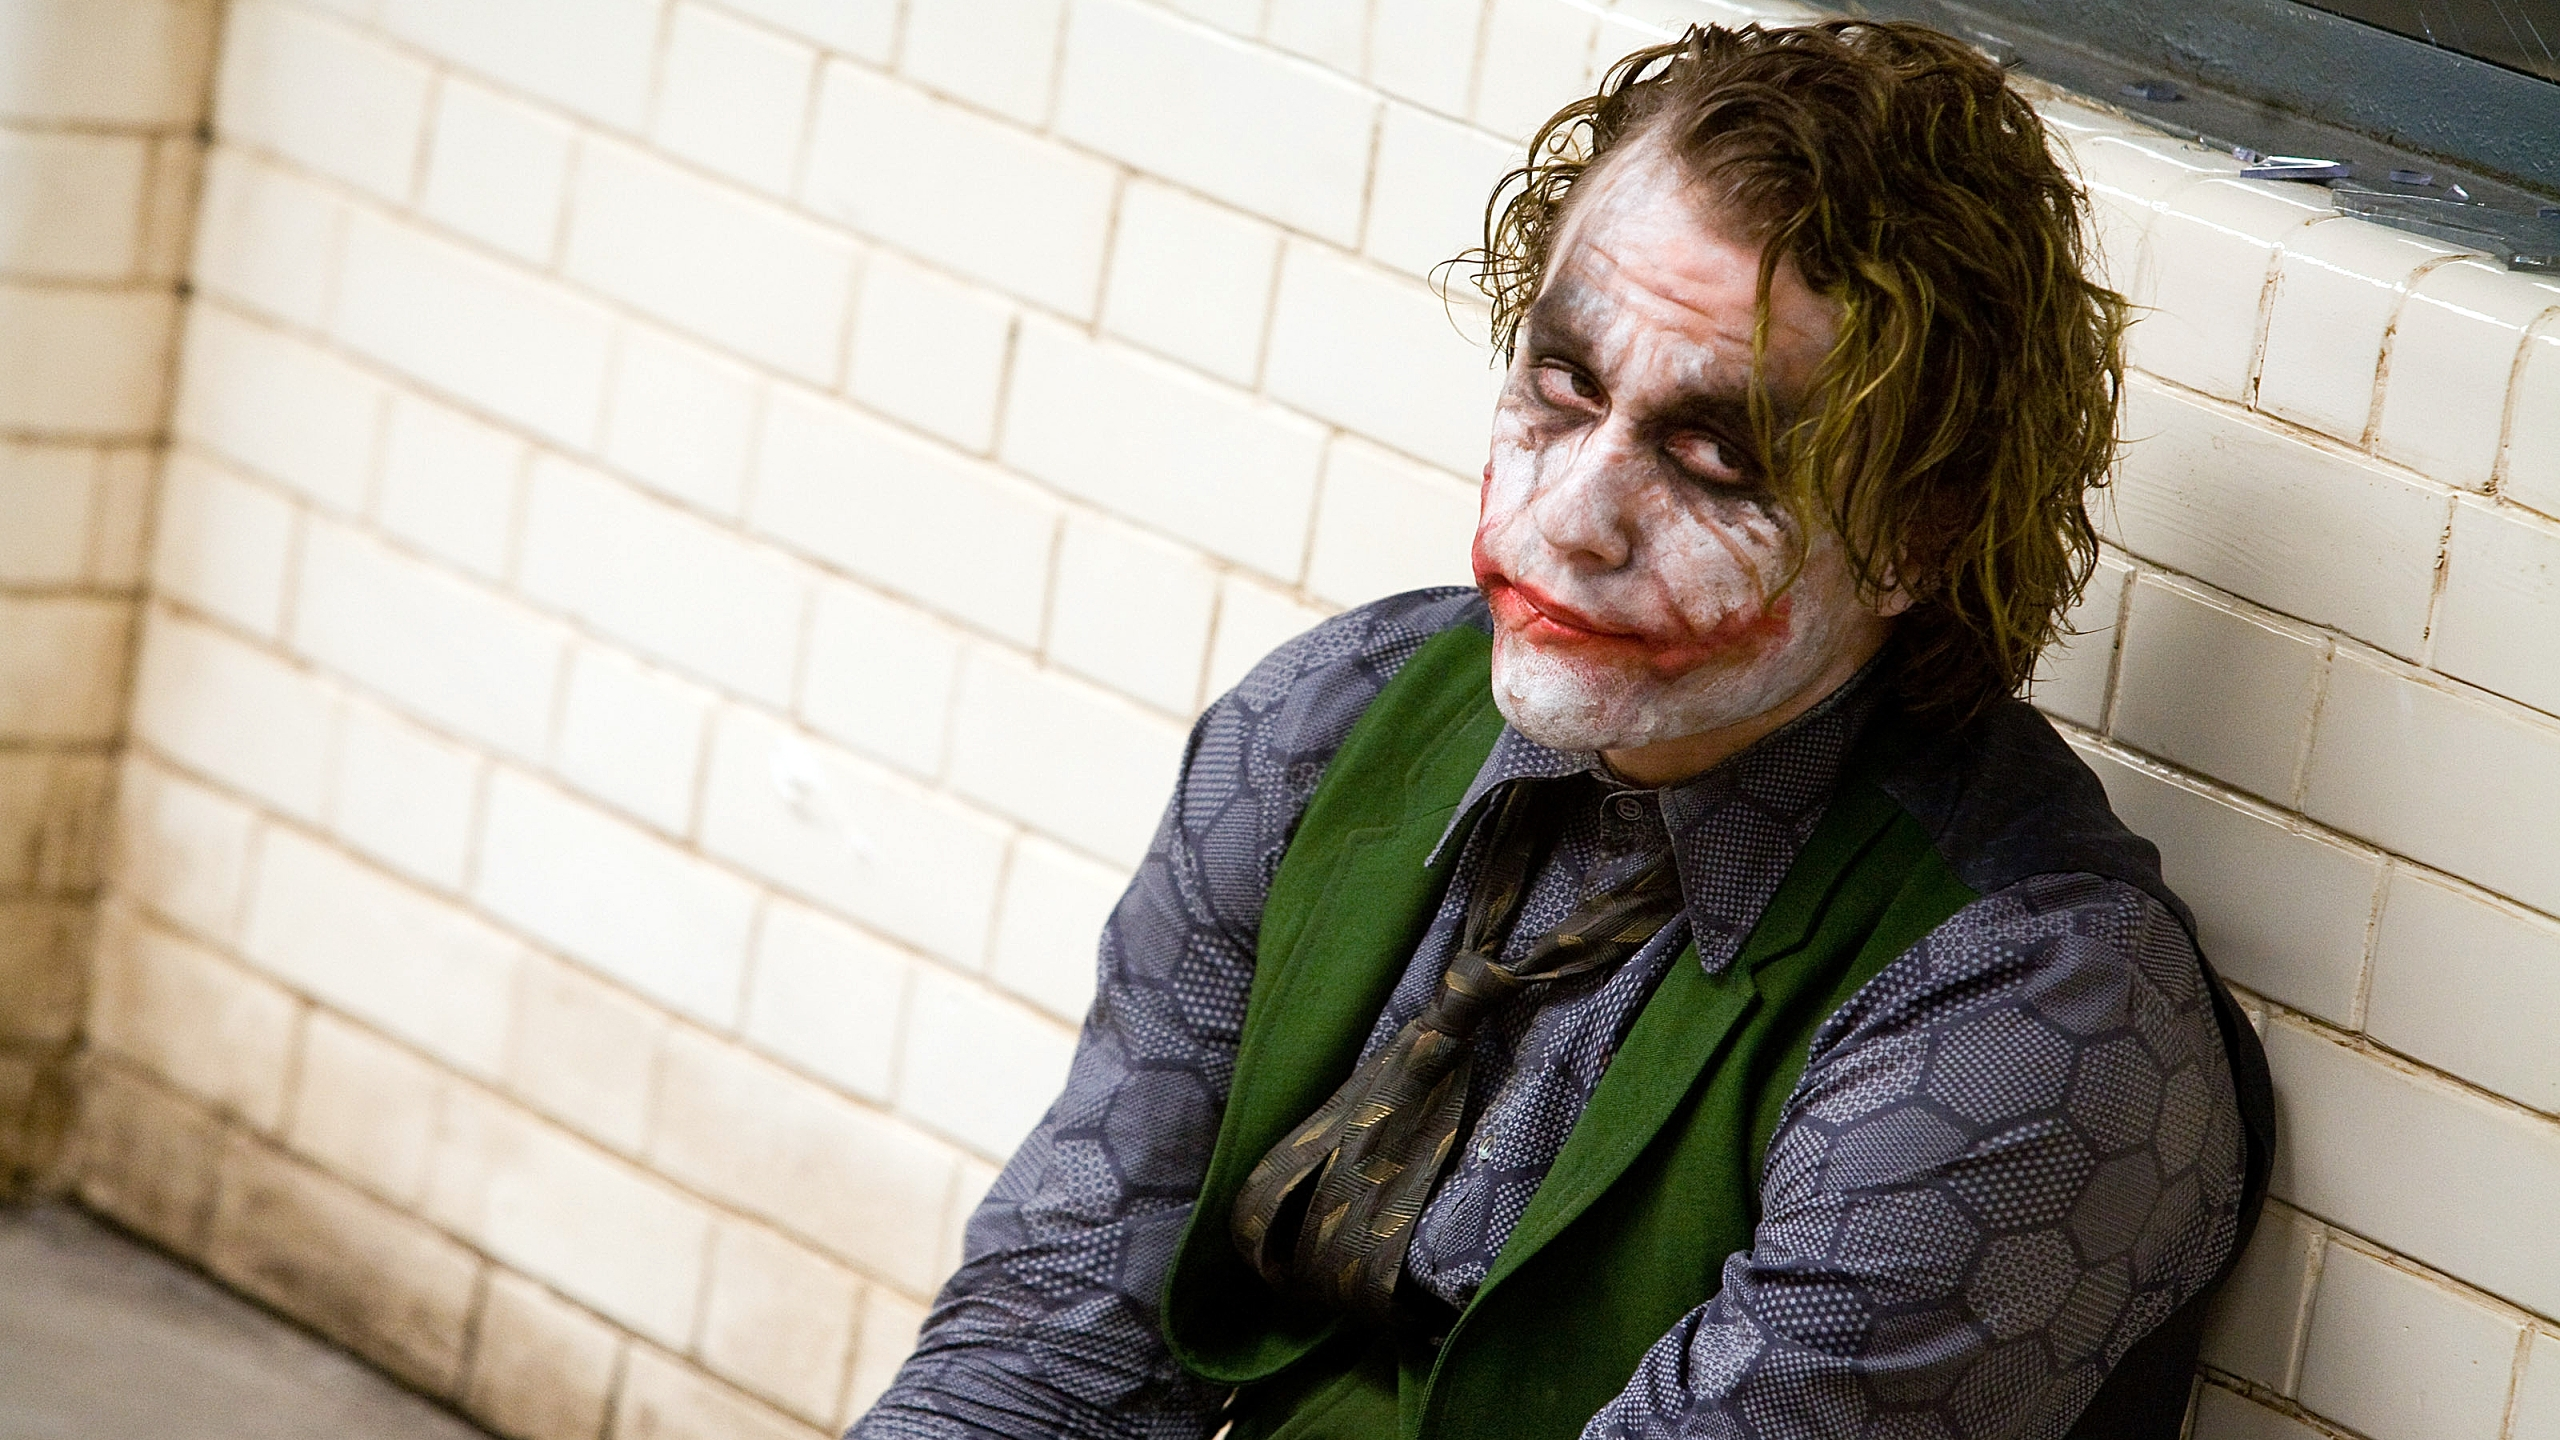 The Dark Knight | Joker | 10 Jahre Ledger | Flip the Truck